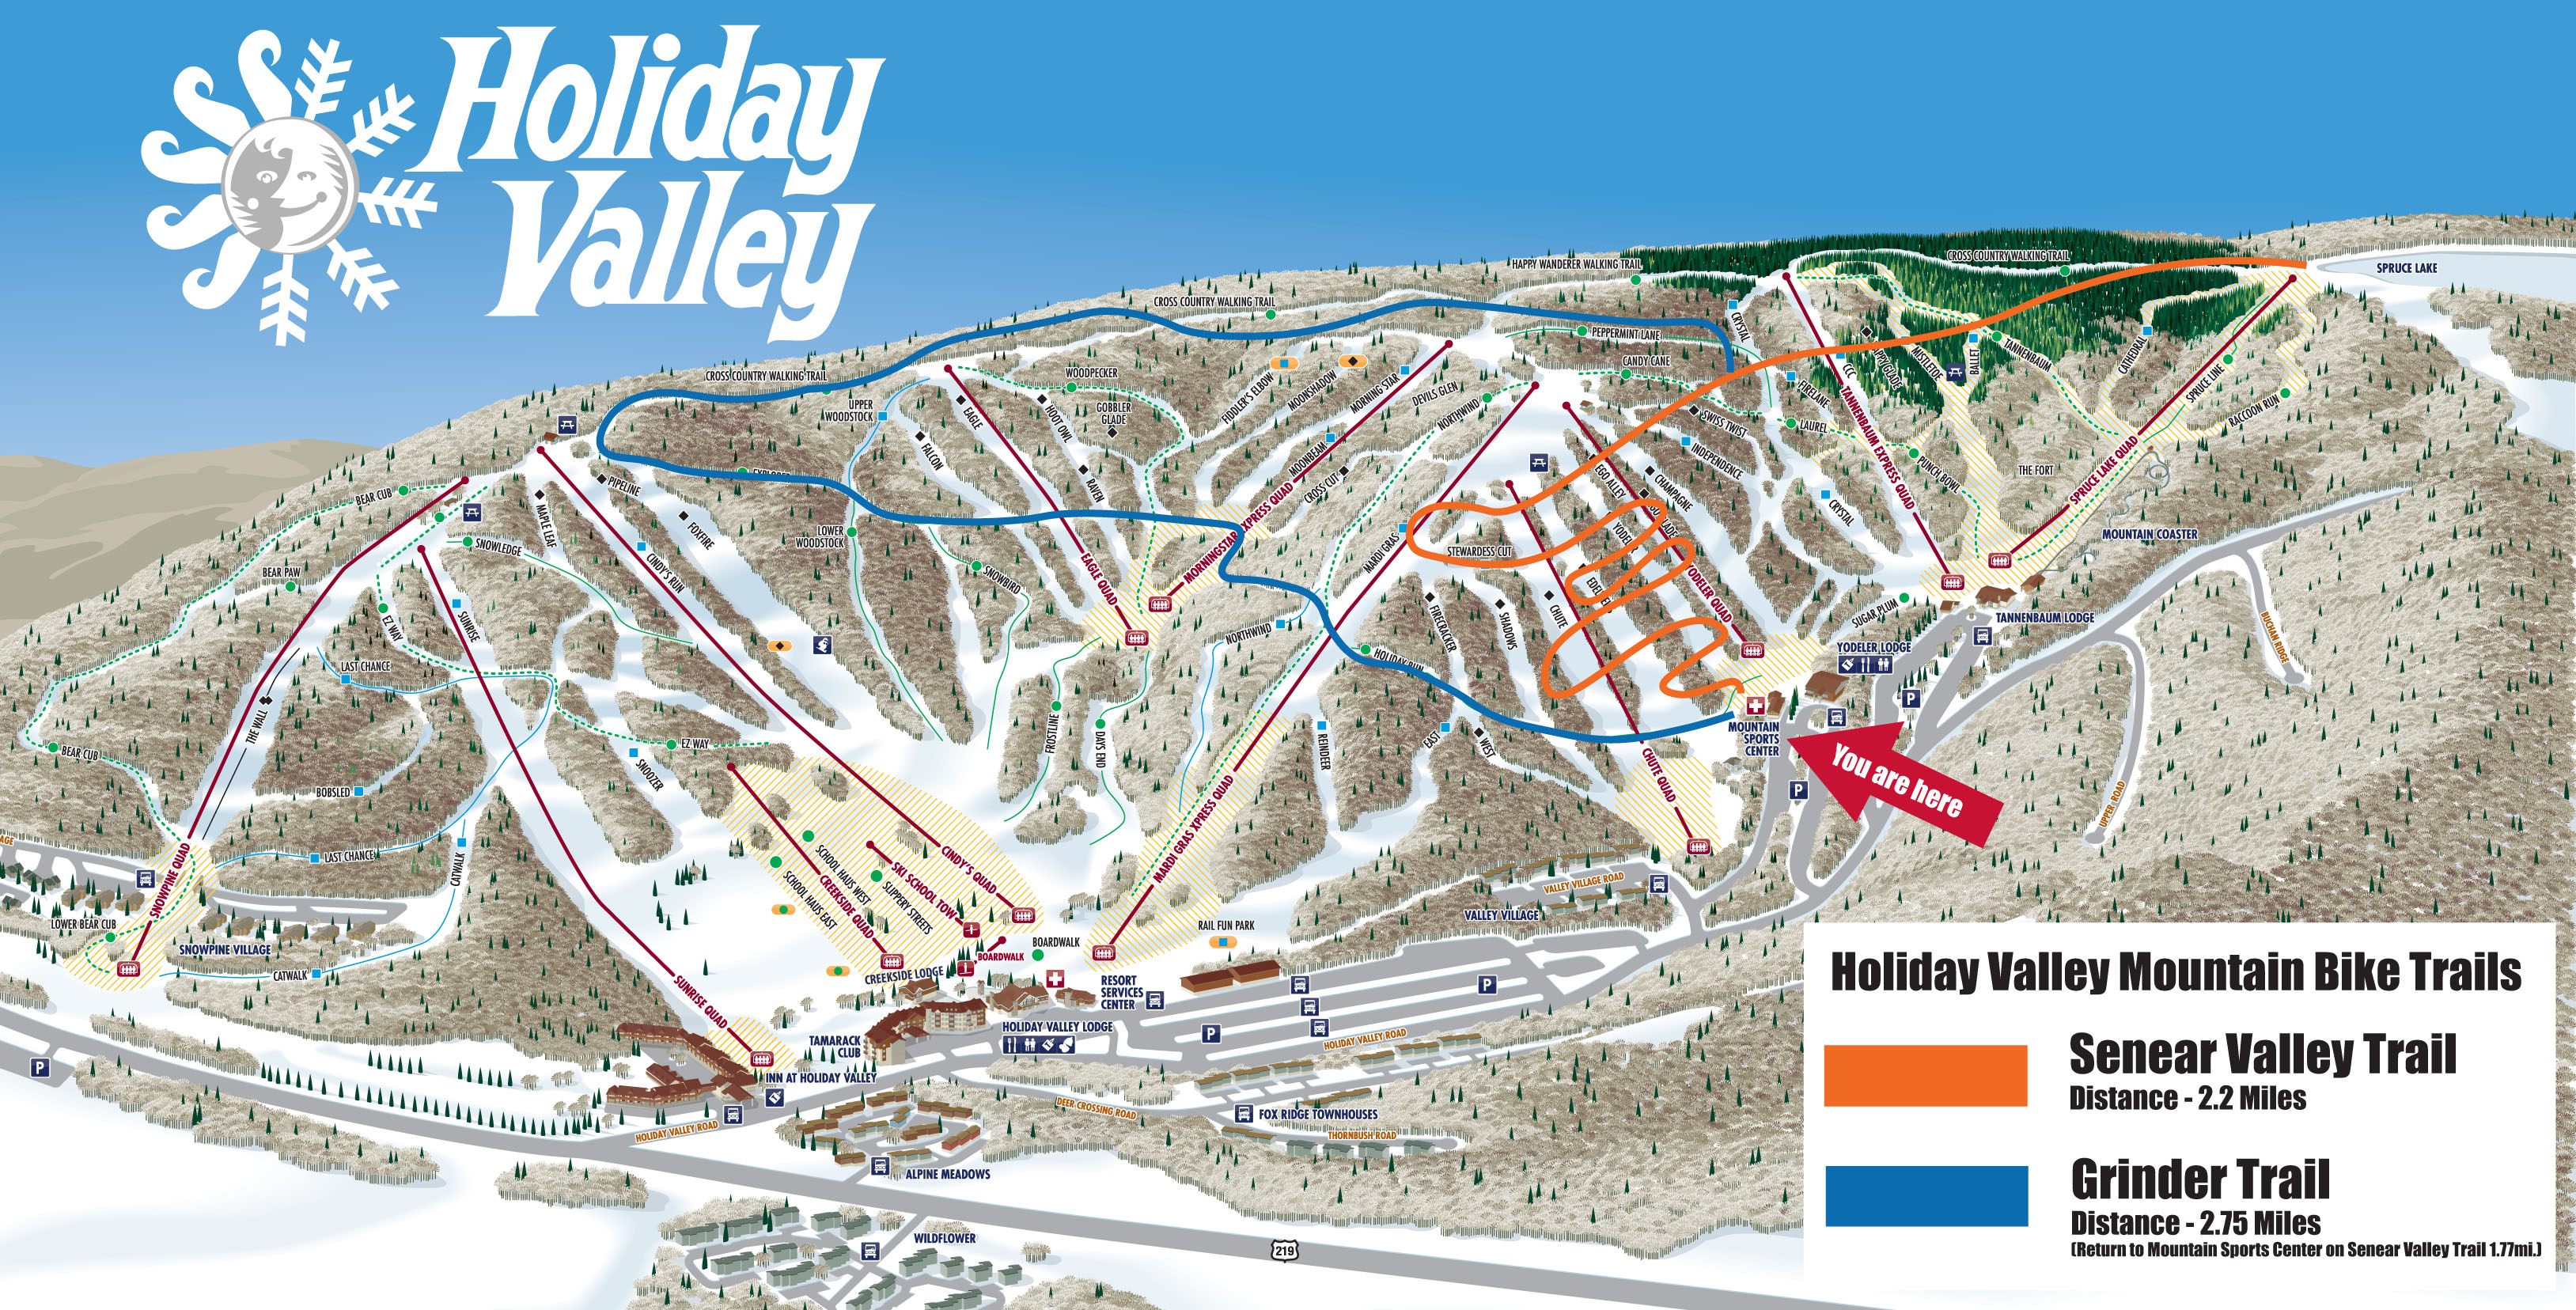 Holiday Valley Mountain Bike Trails